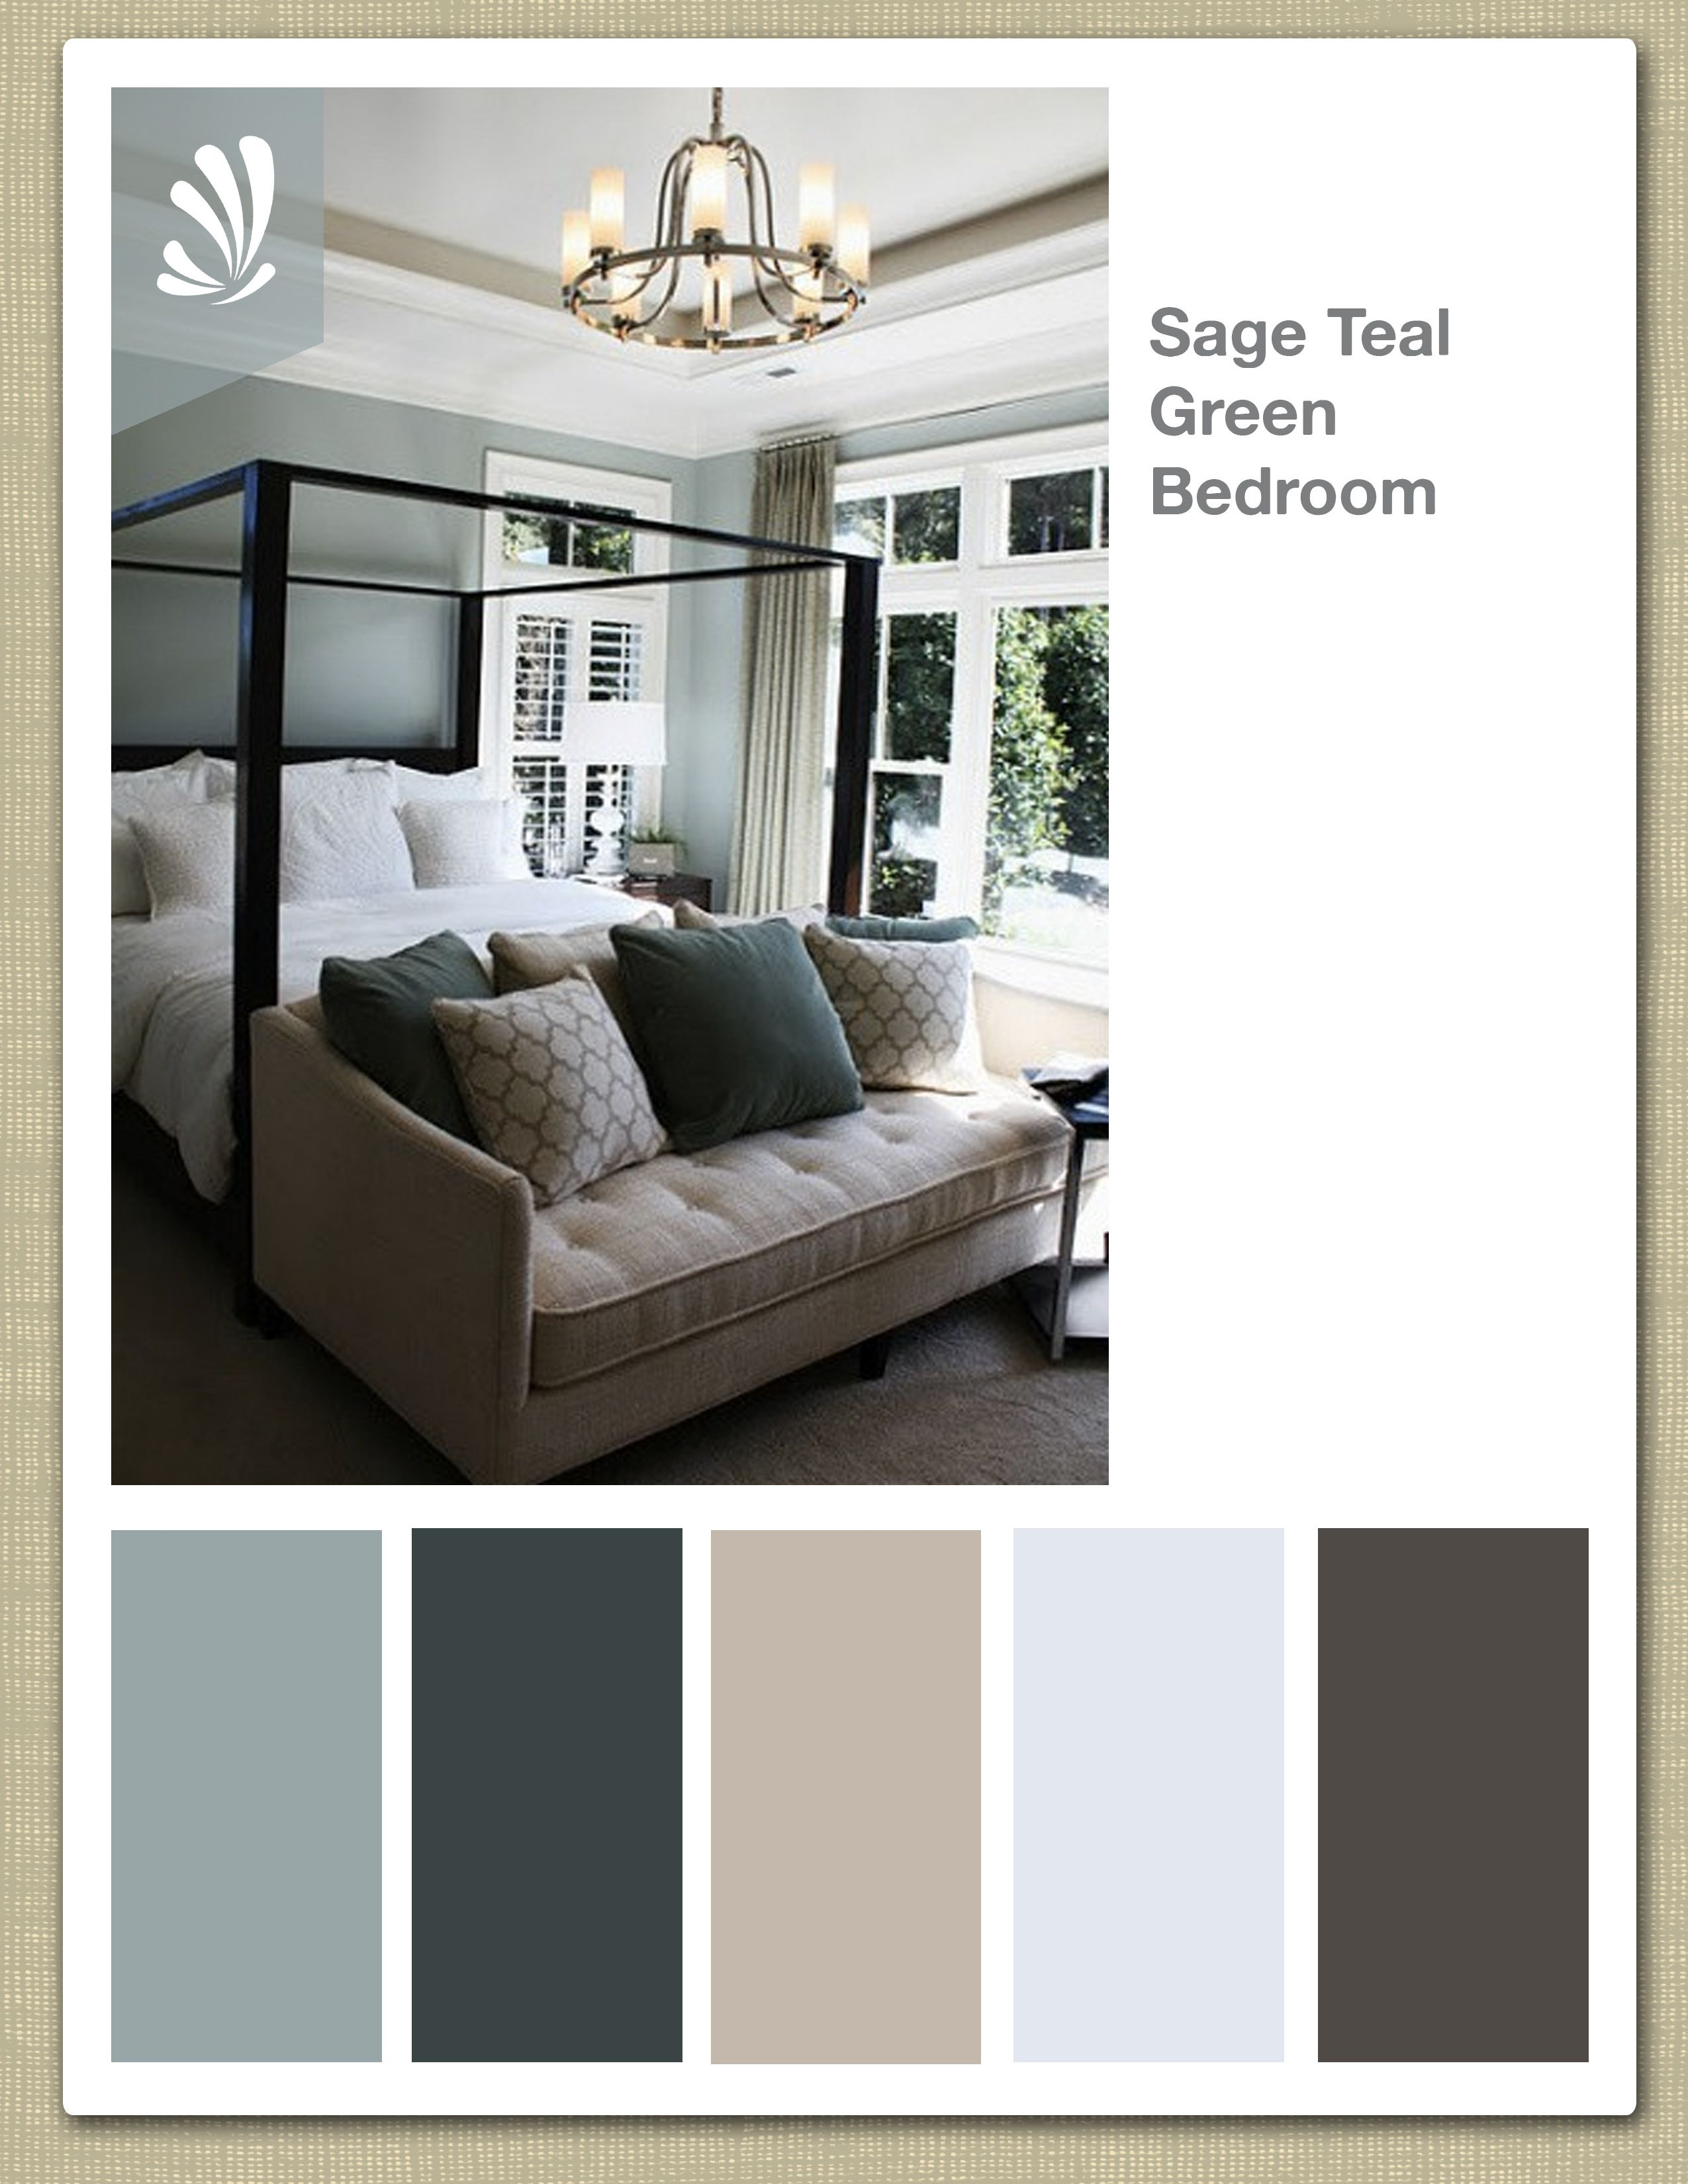 Sage, Cream, Oil Gray and Teal Green Color Palette